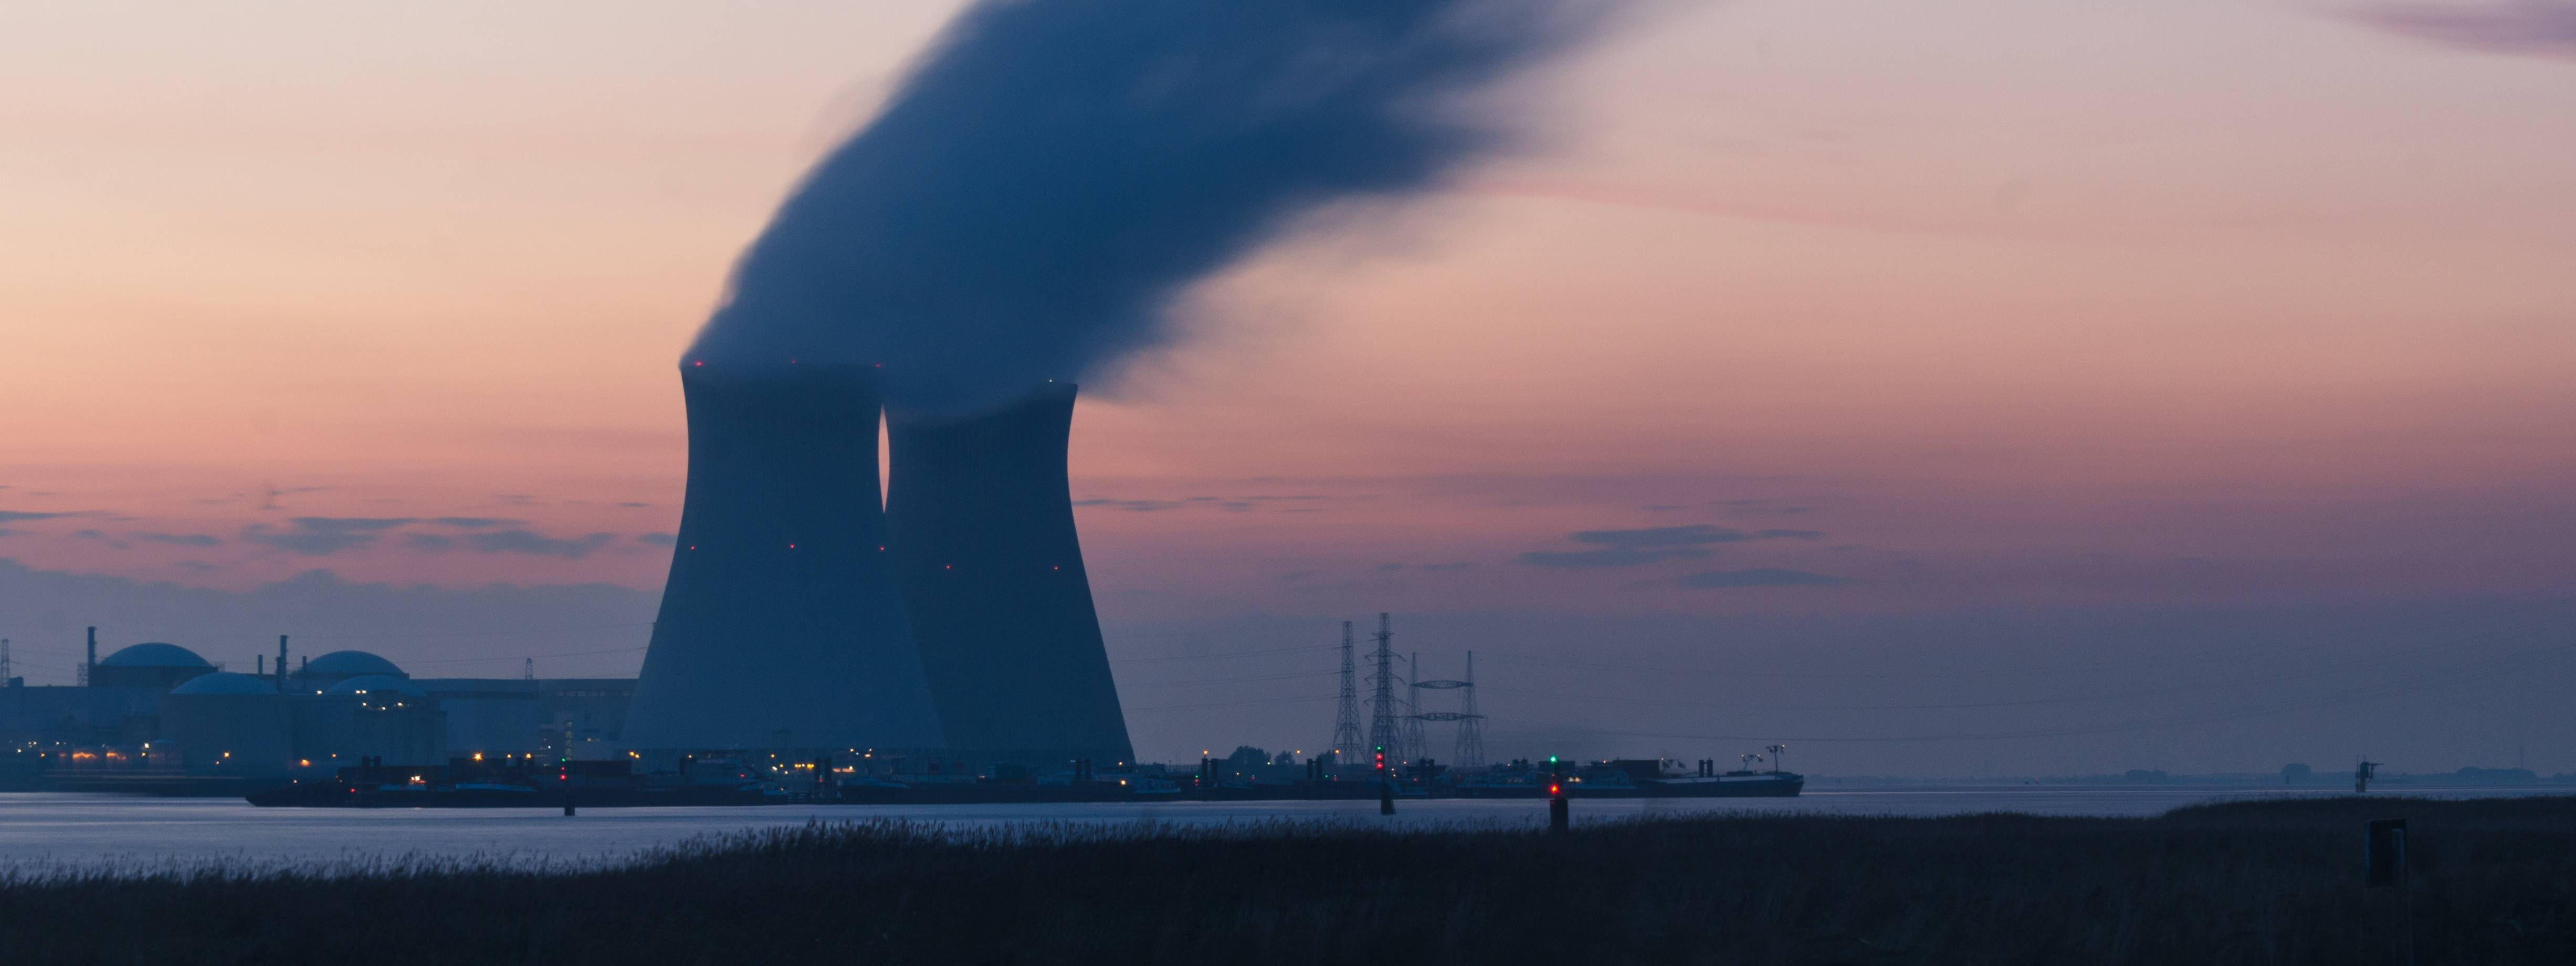 Nuclear power gets second look from advocates of carbon-free energy.